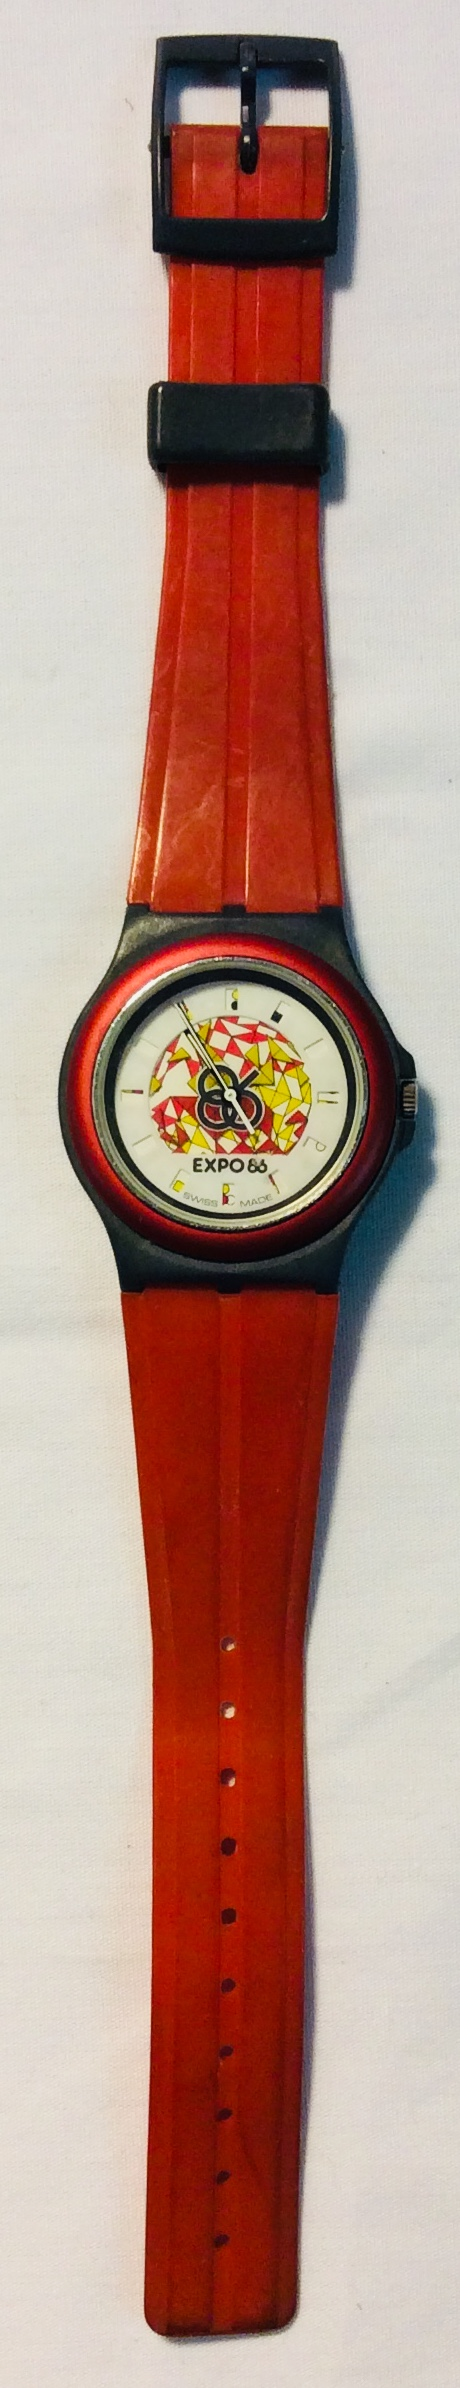 Expo 86 face, red & grey casing